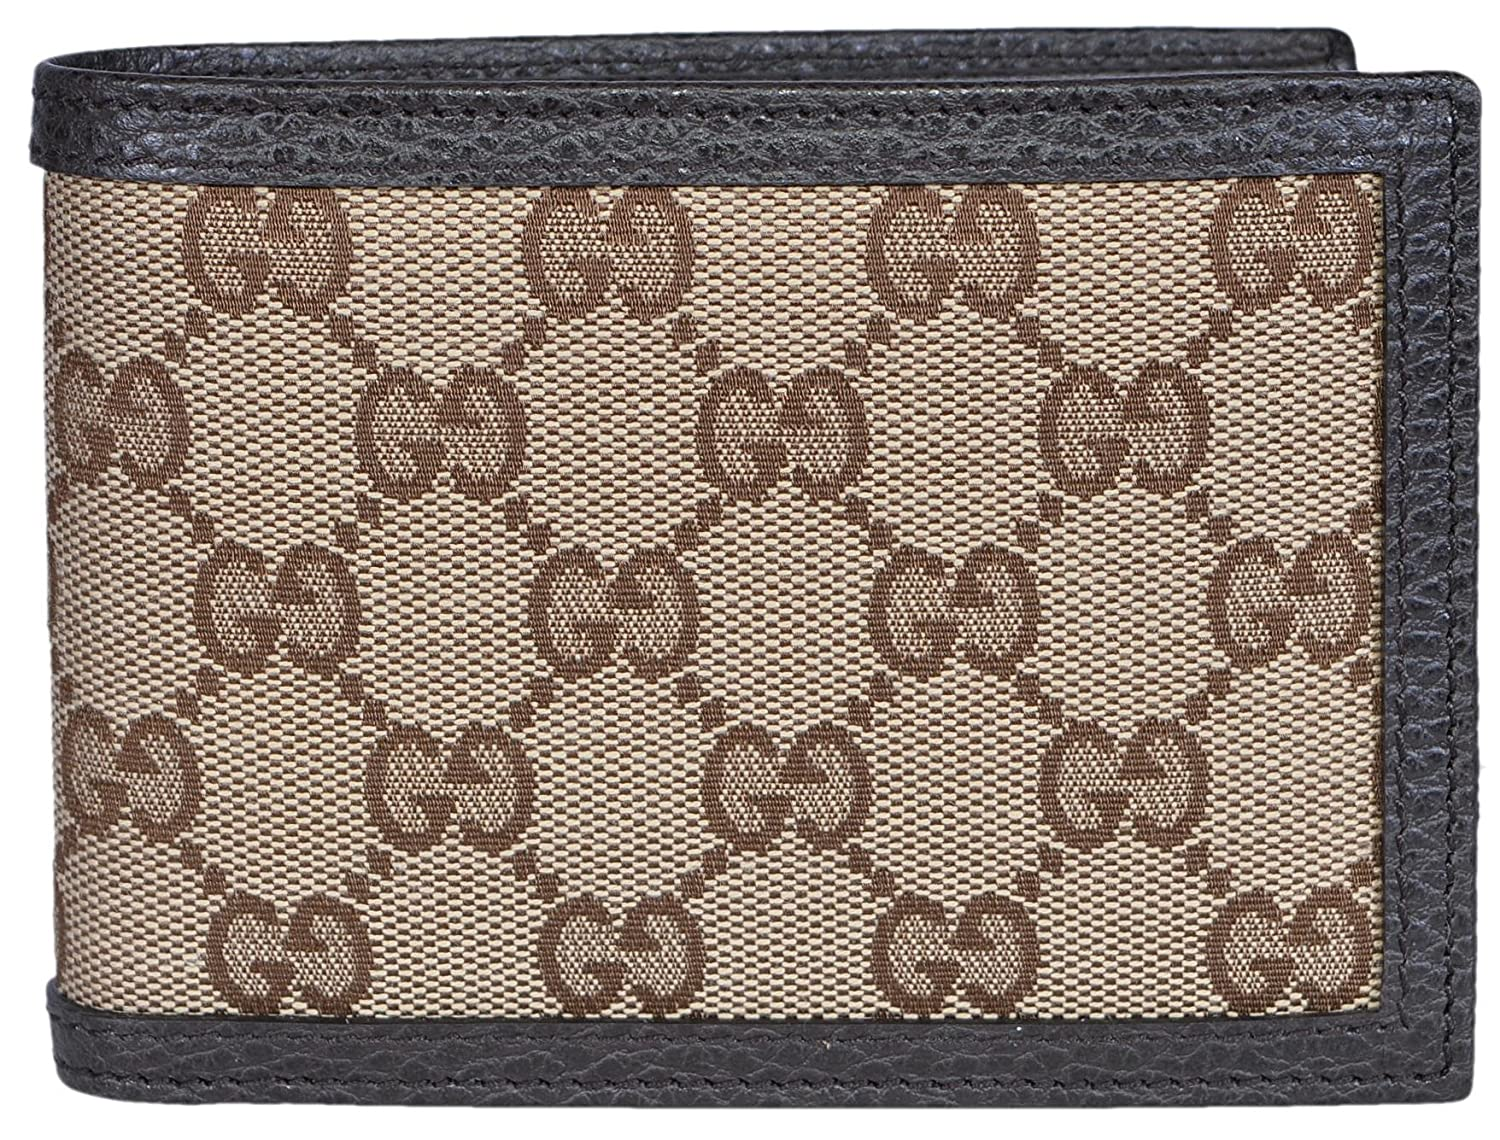 4176d76f6f55b6 Amazon.com: Gucci Men's Canvas Leather GG Guccissima Bifold Wallet (Beige/Brown):  Clothing